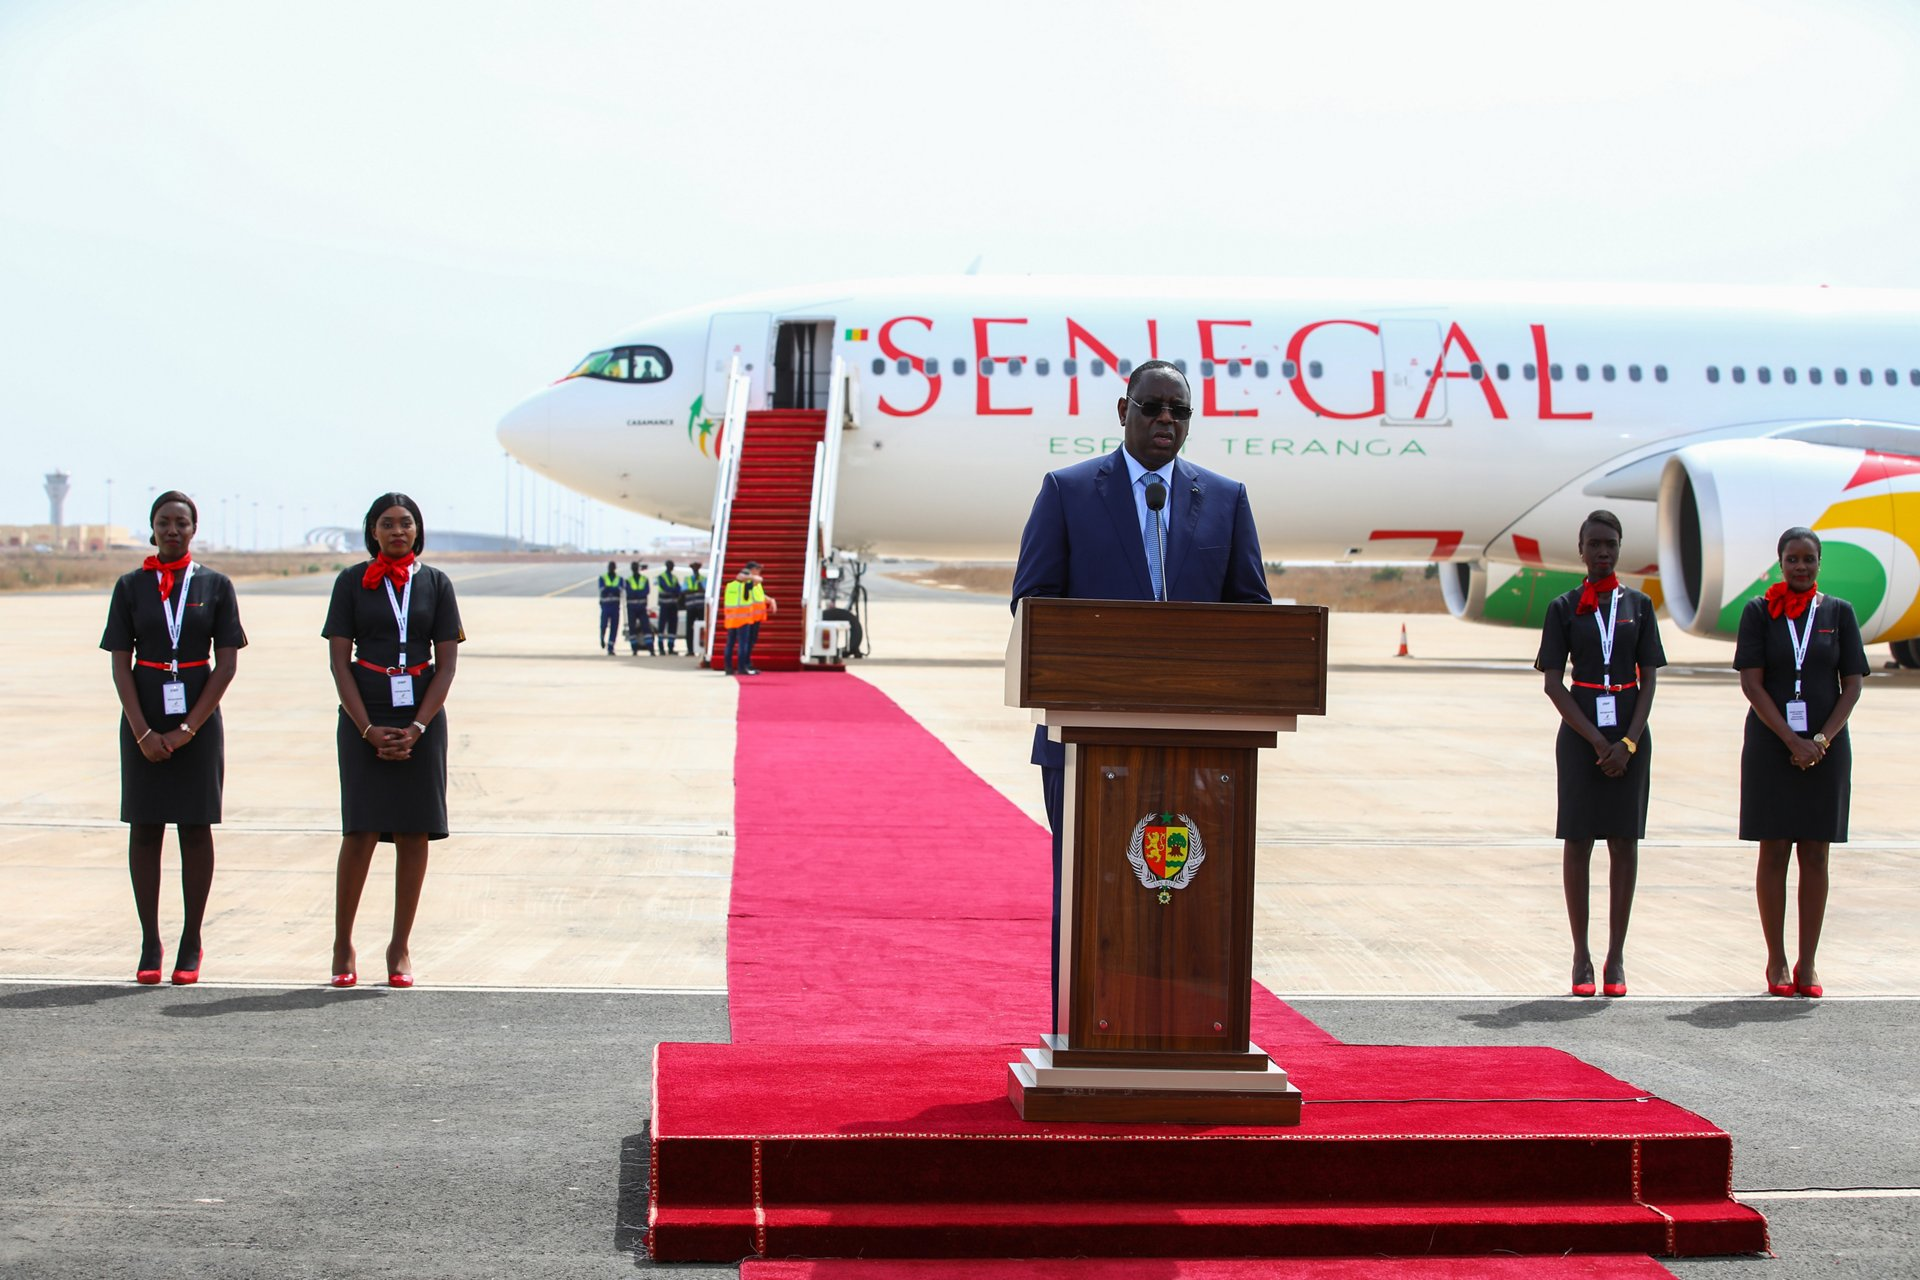 """The initial A330neo for Air Senegal, named """"Casamance,"""" was presented during a ceremony at Blaise-Diagne International Airport in Dakar attended by Macky Sall, President of the Republic of Senegal"""